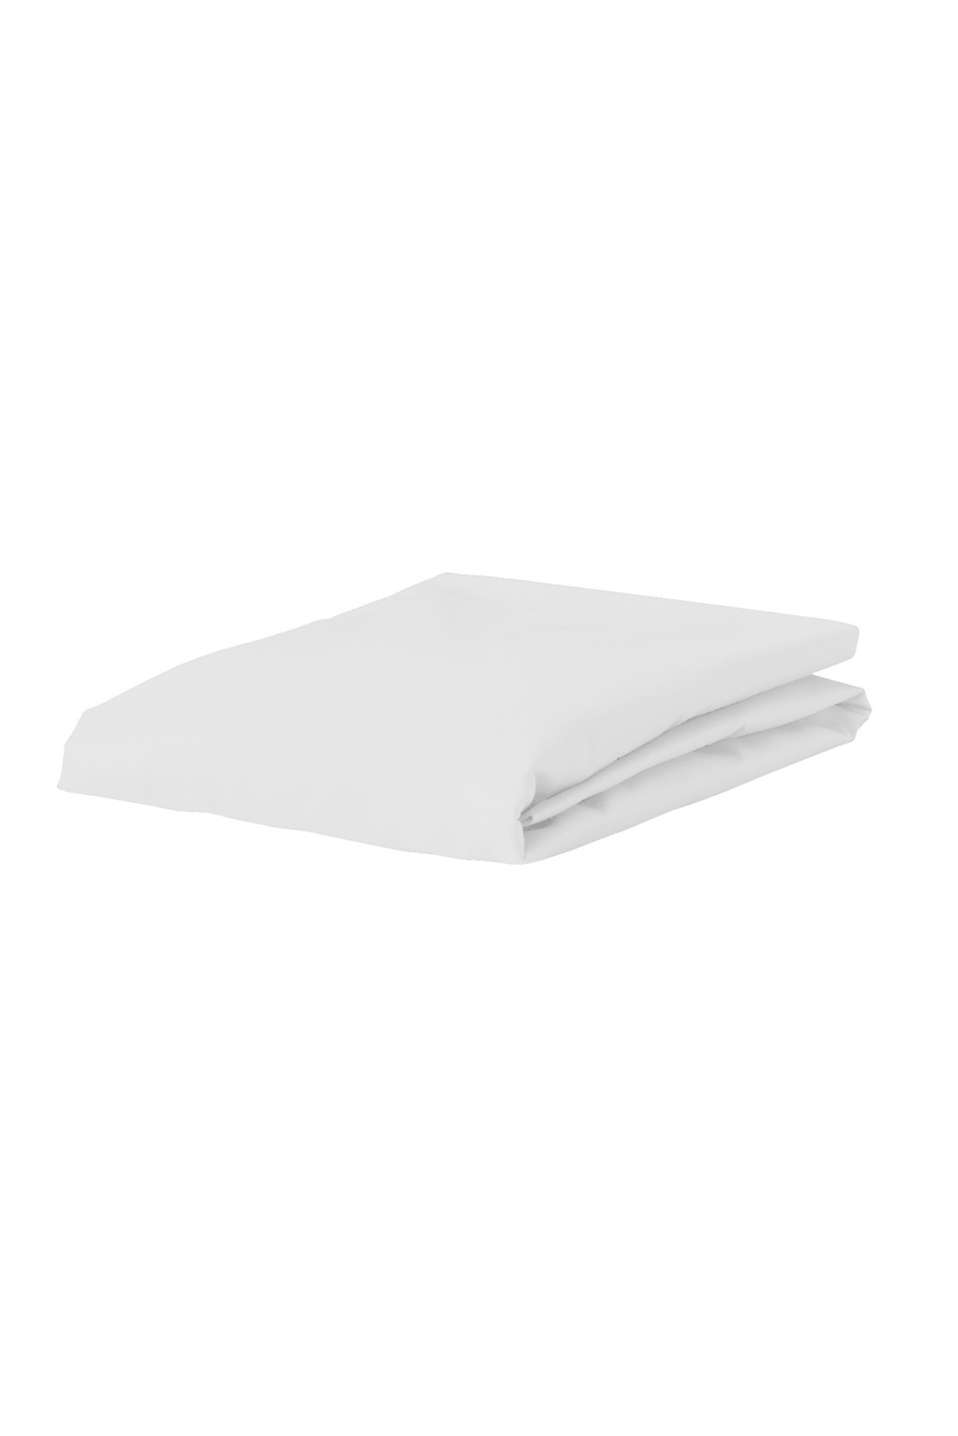 Jersey Fitted SheetFitted SheetBed Cloth 95/% Cotton 5/% Elastane